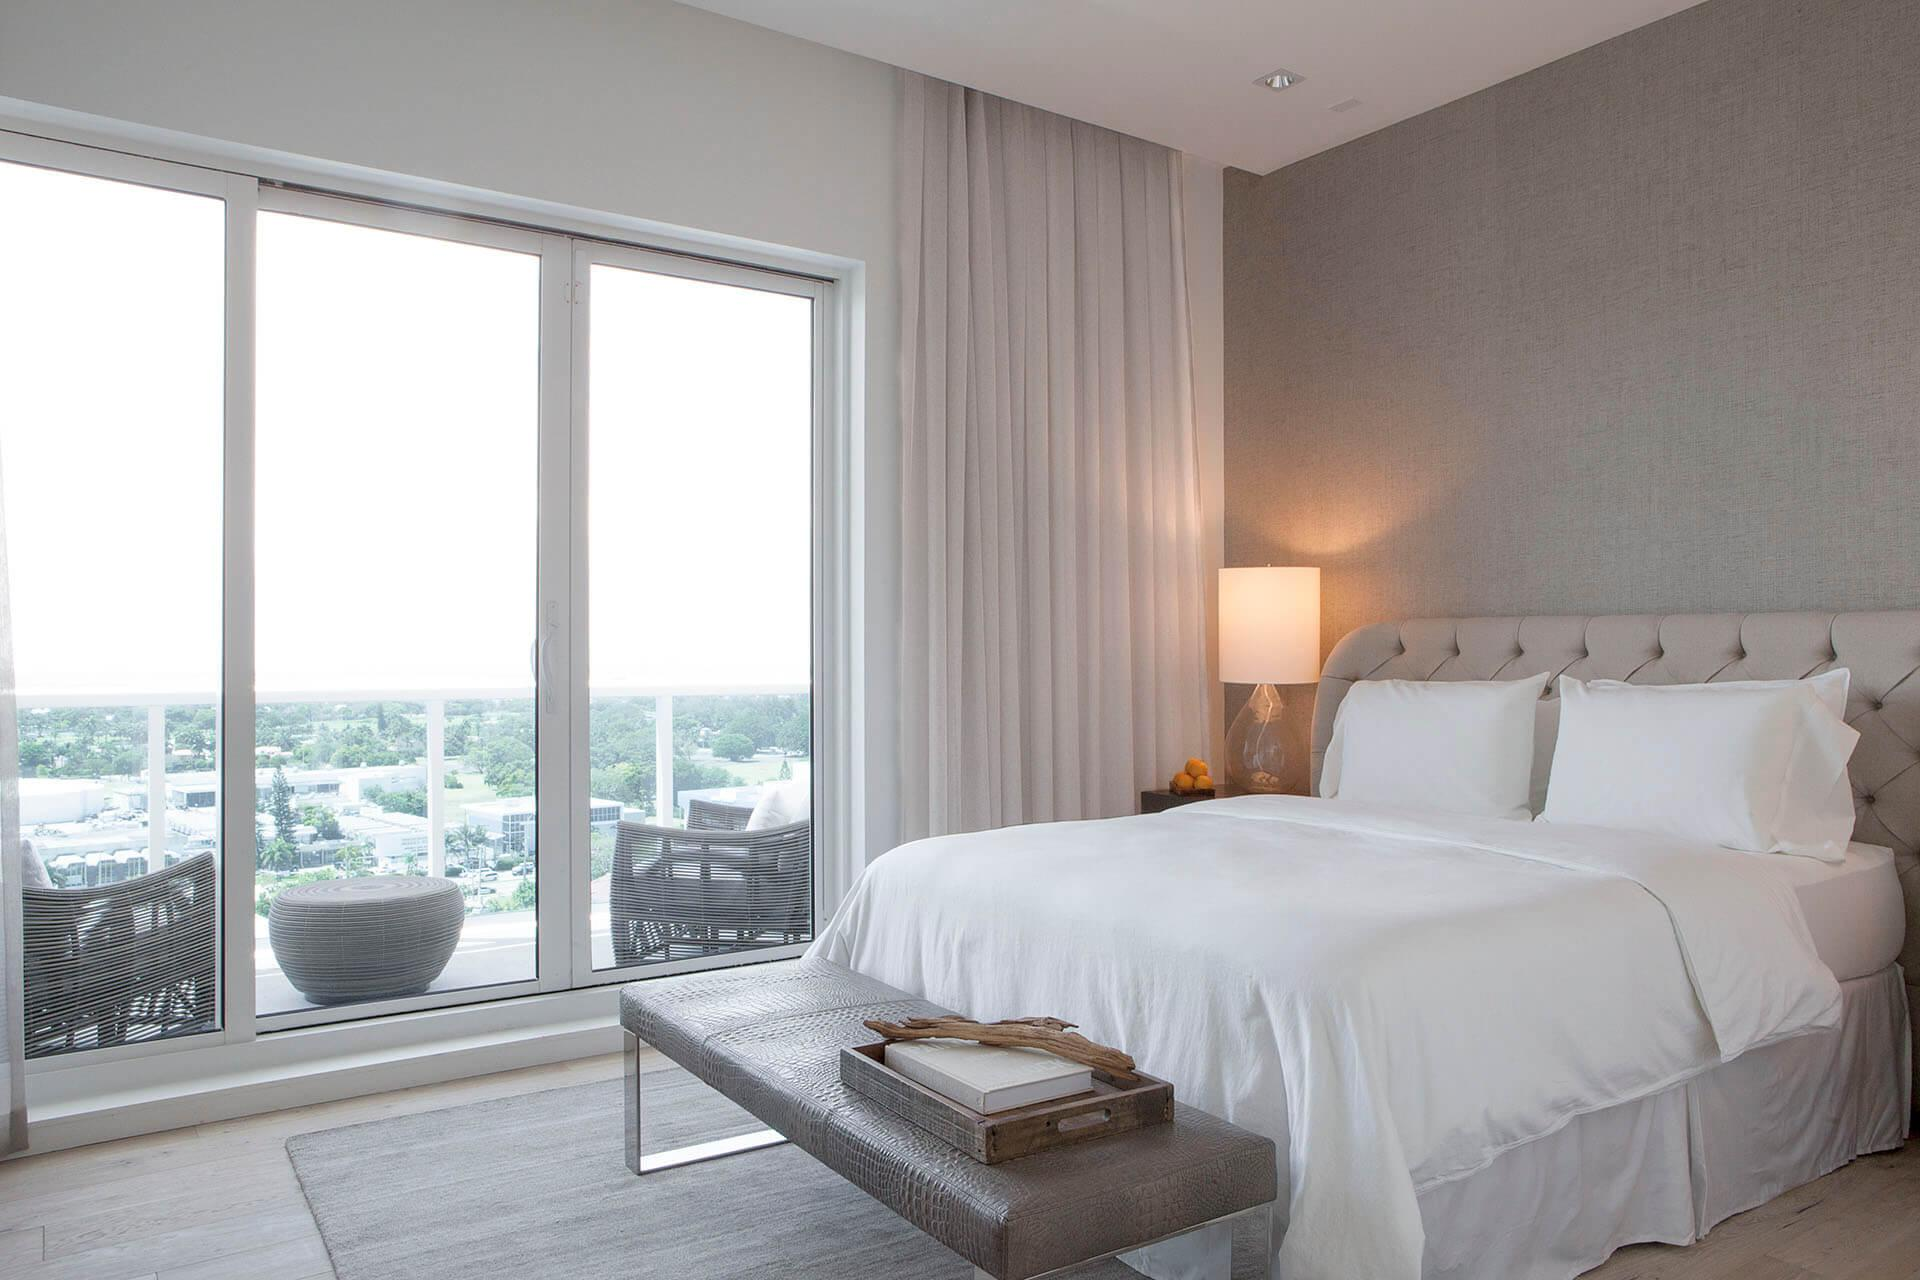 Two Bedroom Penthouse Skyline View with Balcony | Bedroom